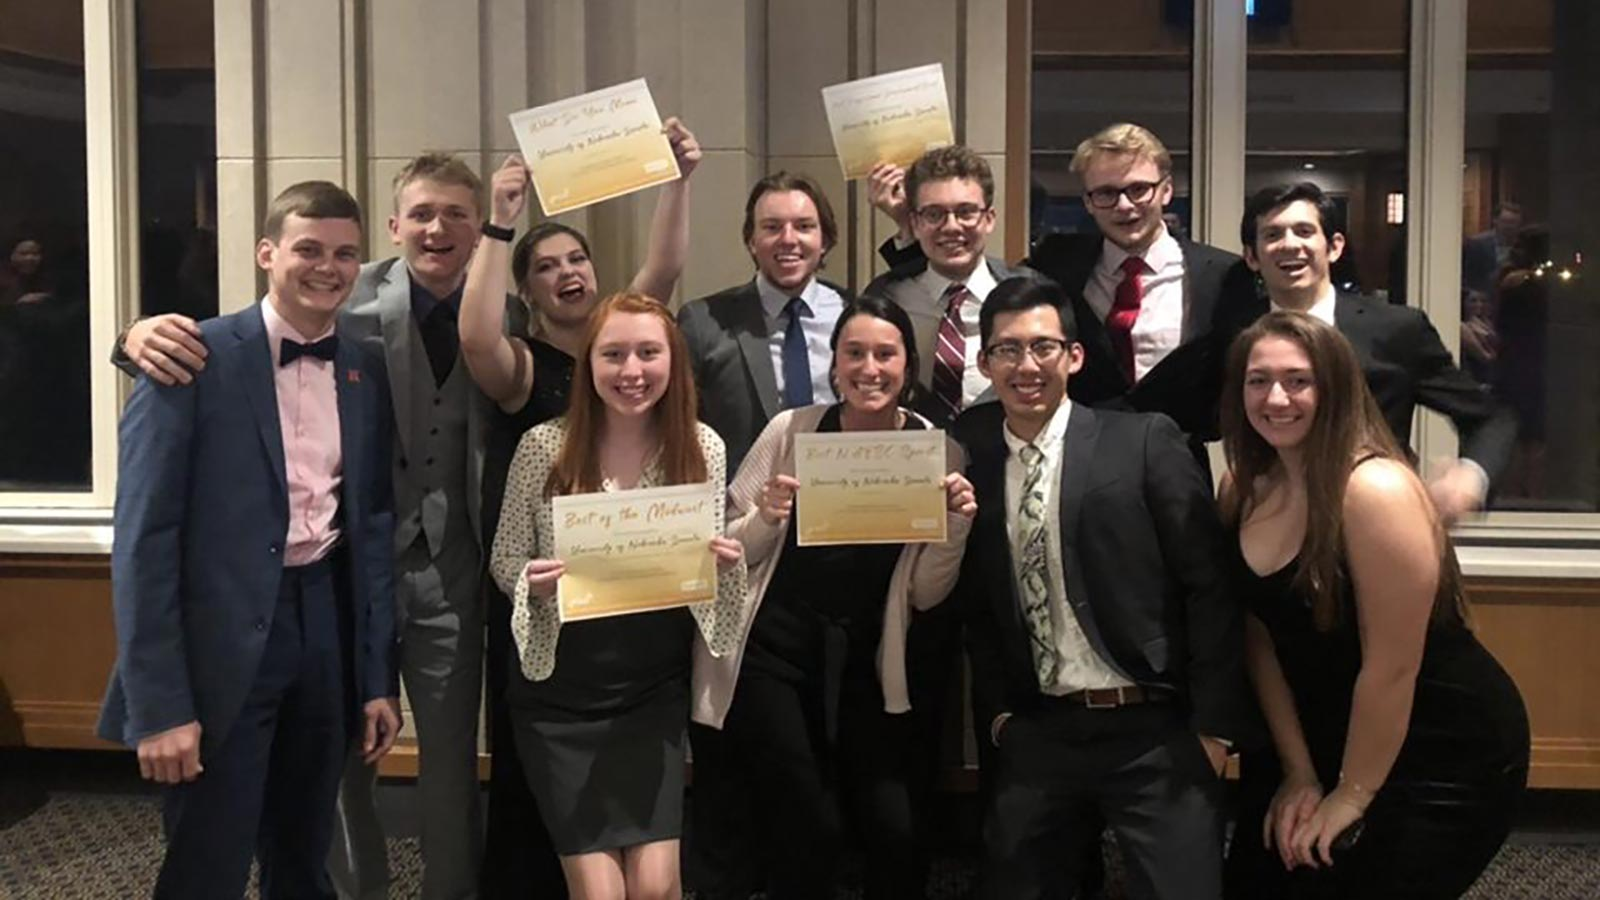 """Sidney Matthias and a group of engineering friends show off their """"Best of the Midwest"""" awards."""